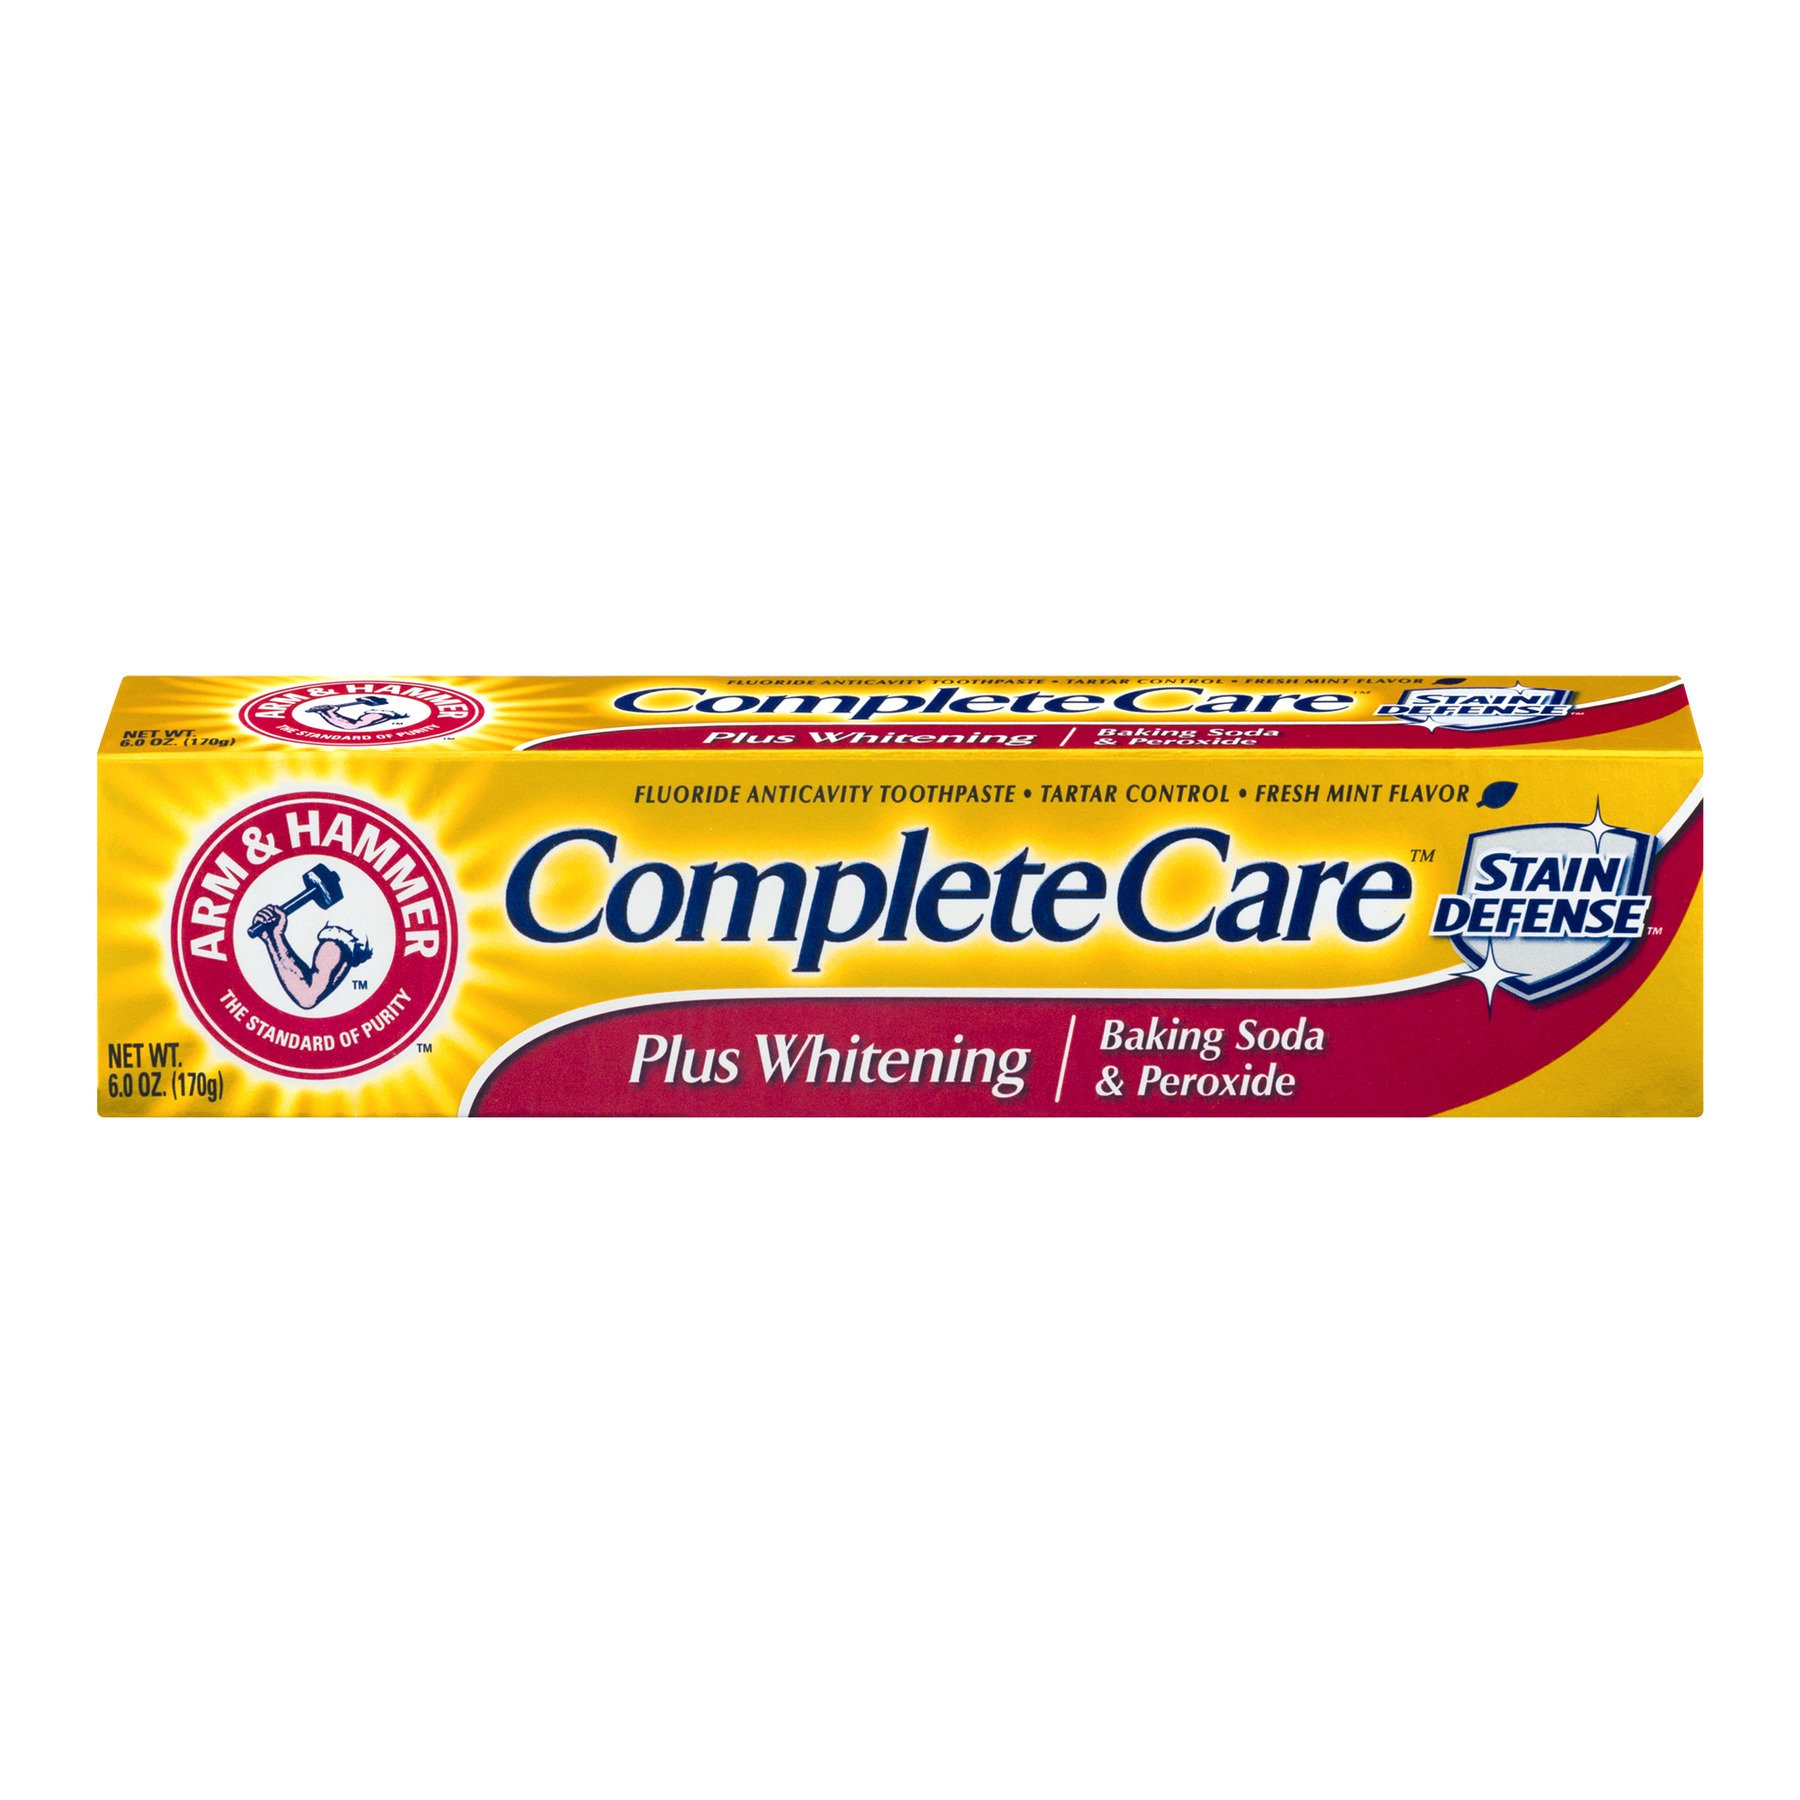 (2 pack) Arm & Hammer Complete Care Stain Defense Plus Whitening Baking Soda & Peroxide, 6.0 OZ